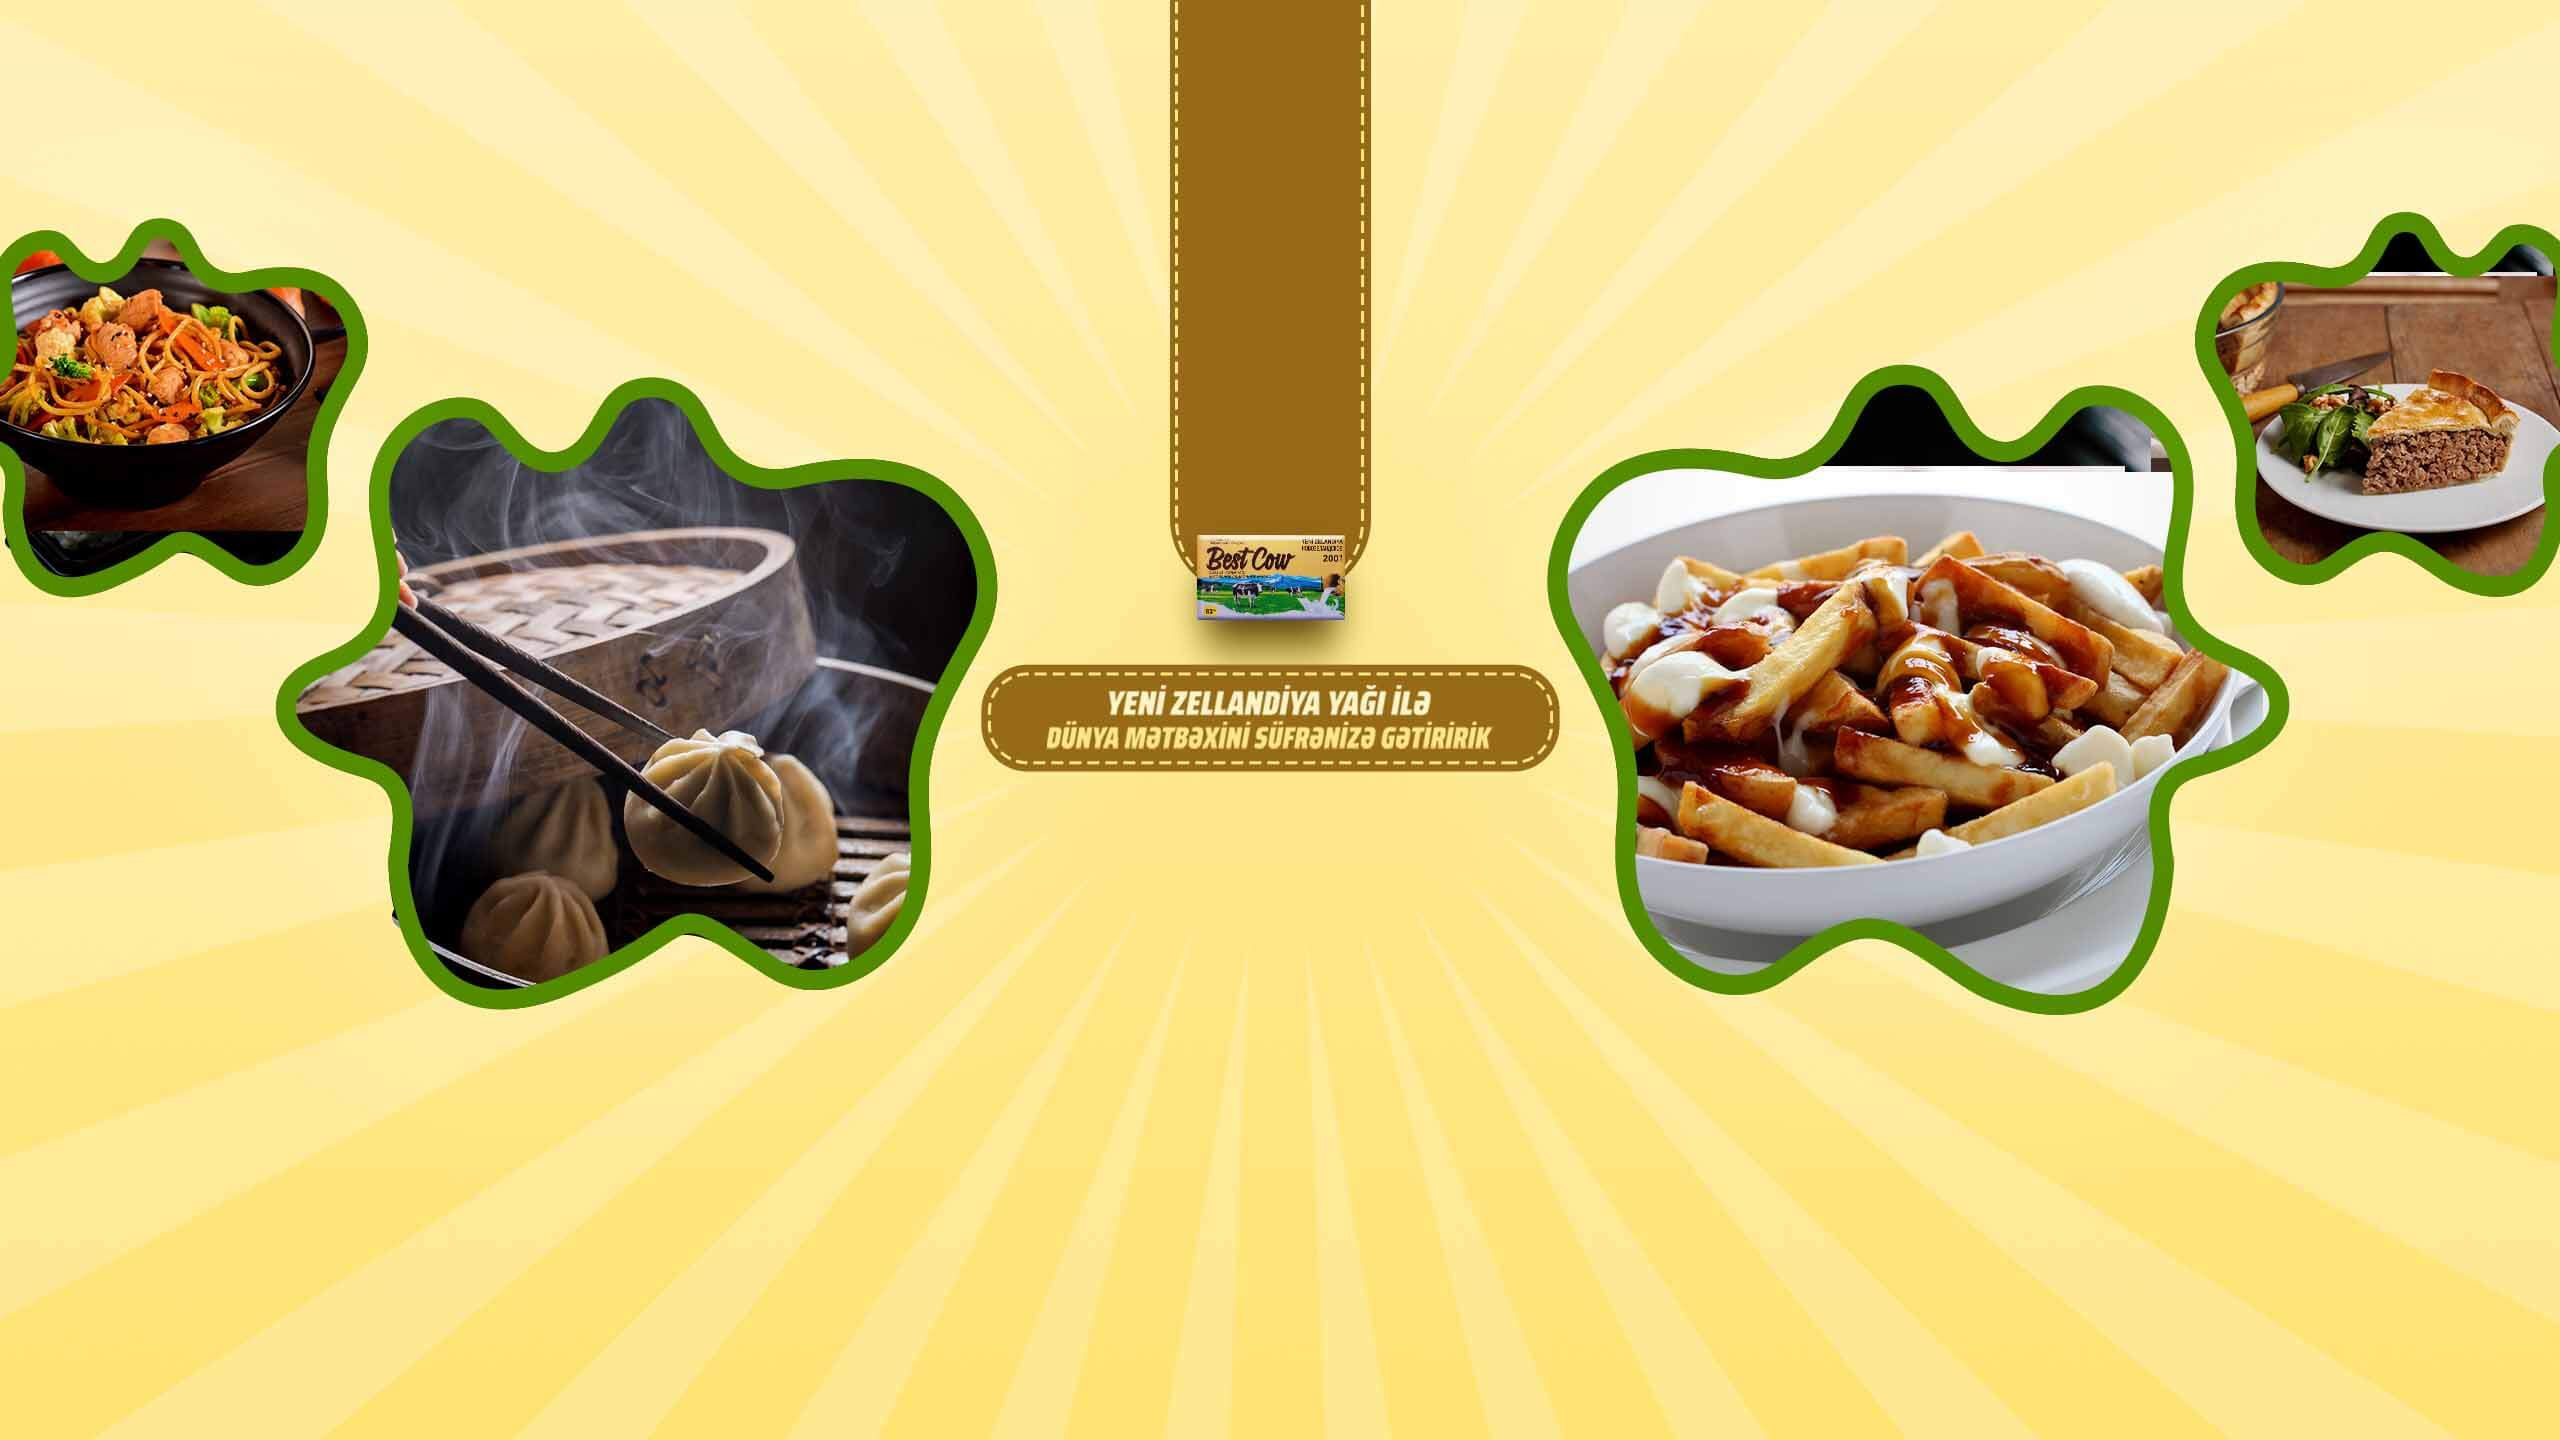 World cuisines with Best Cow